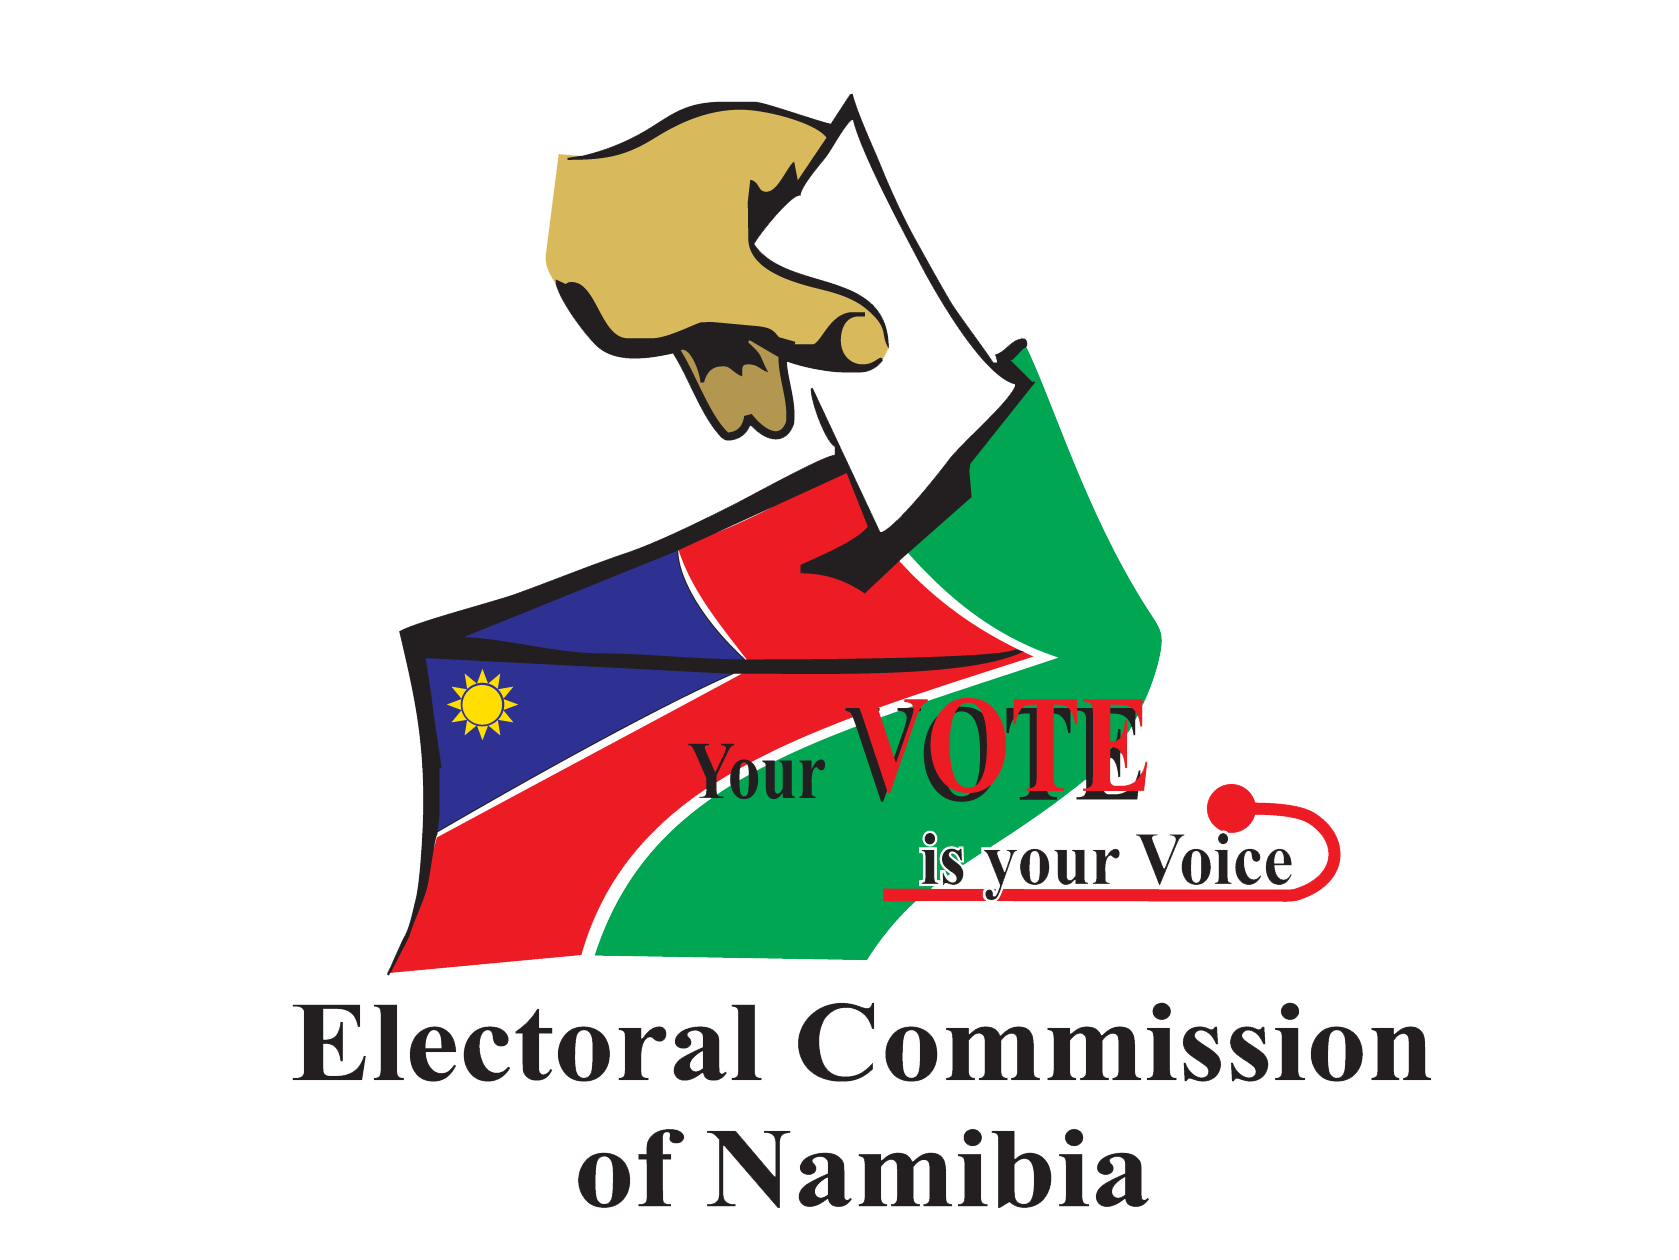 Electoral Commission of Namibia